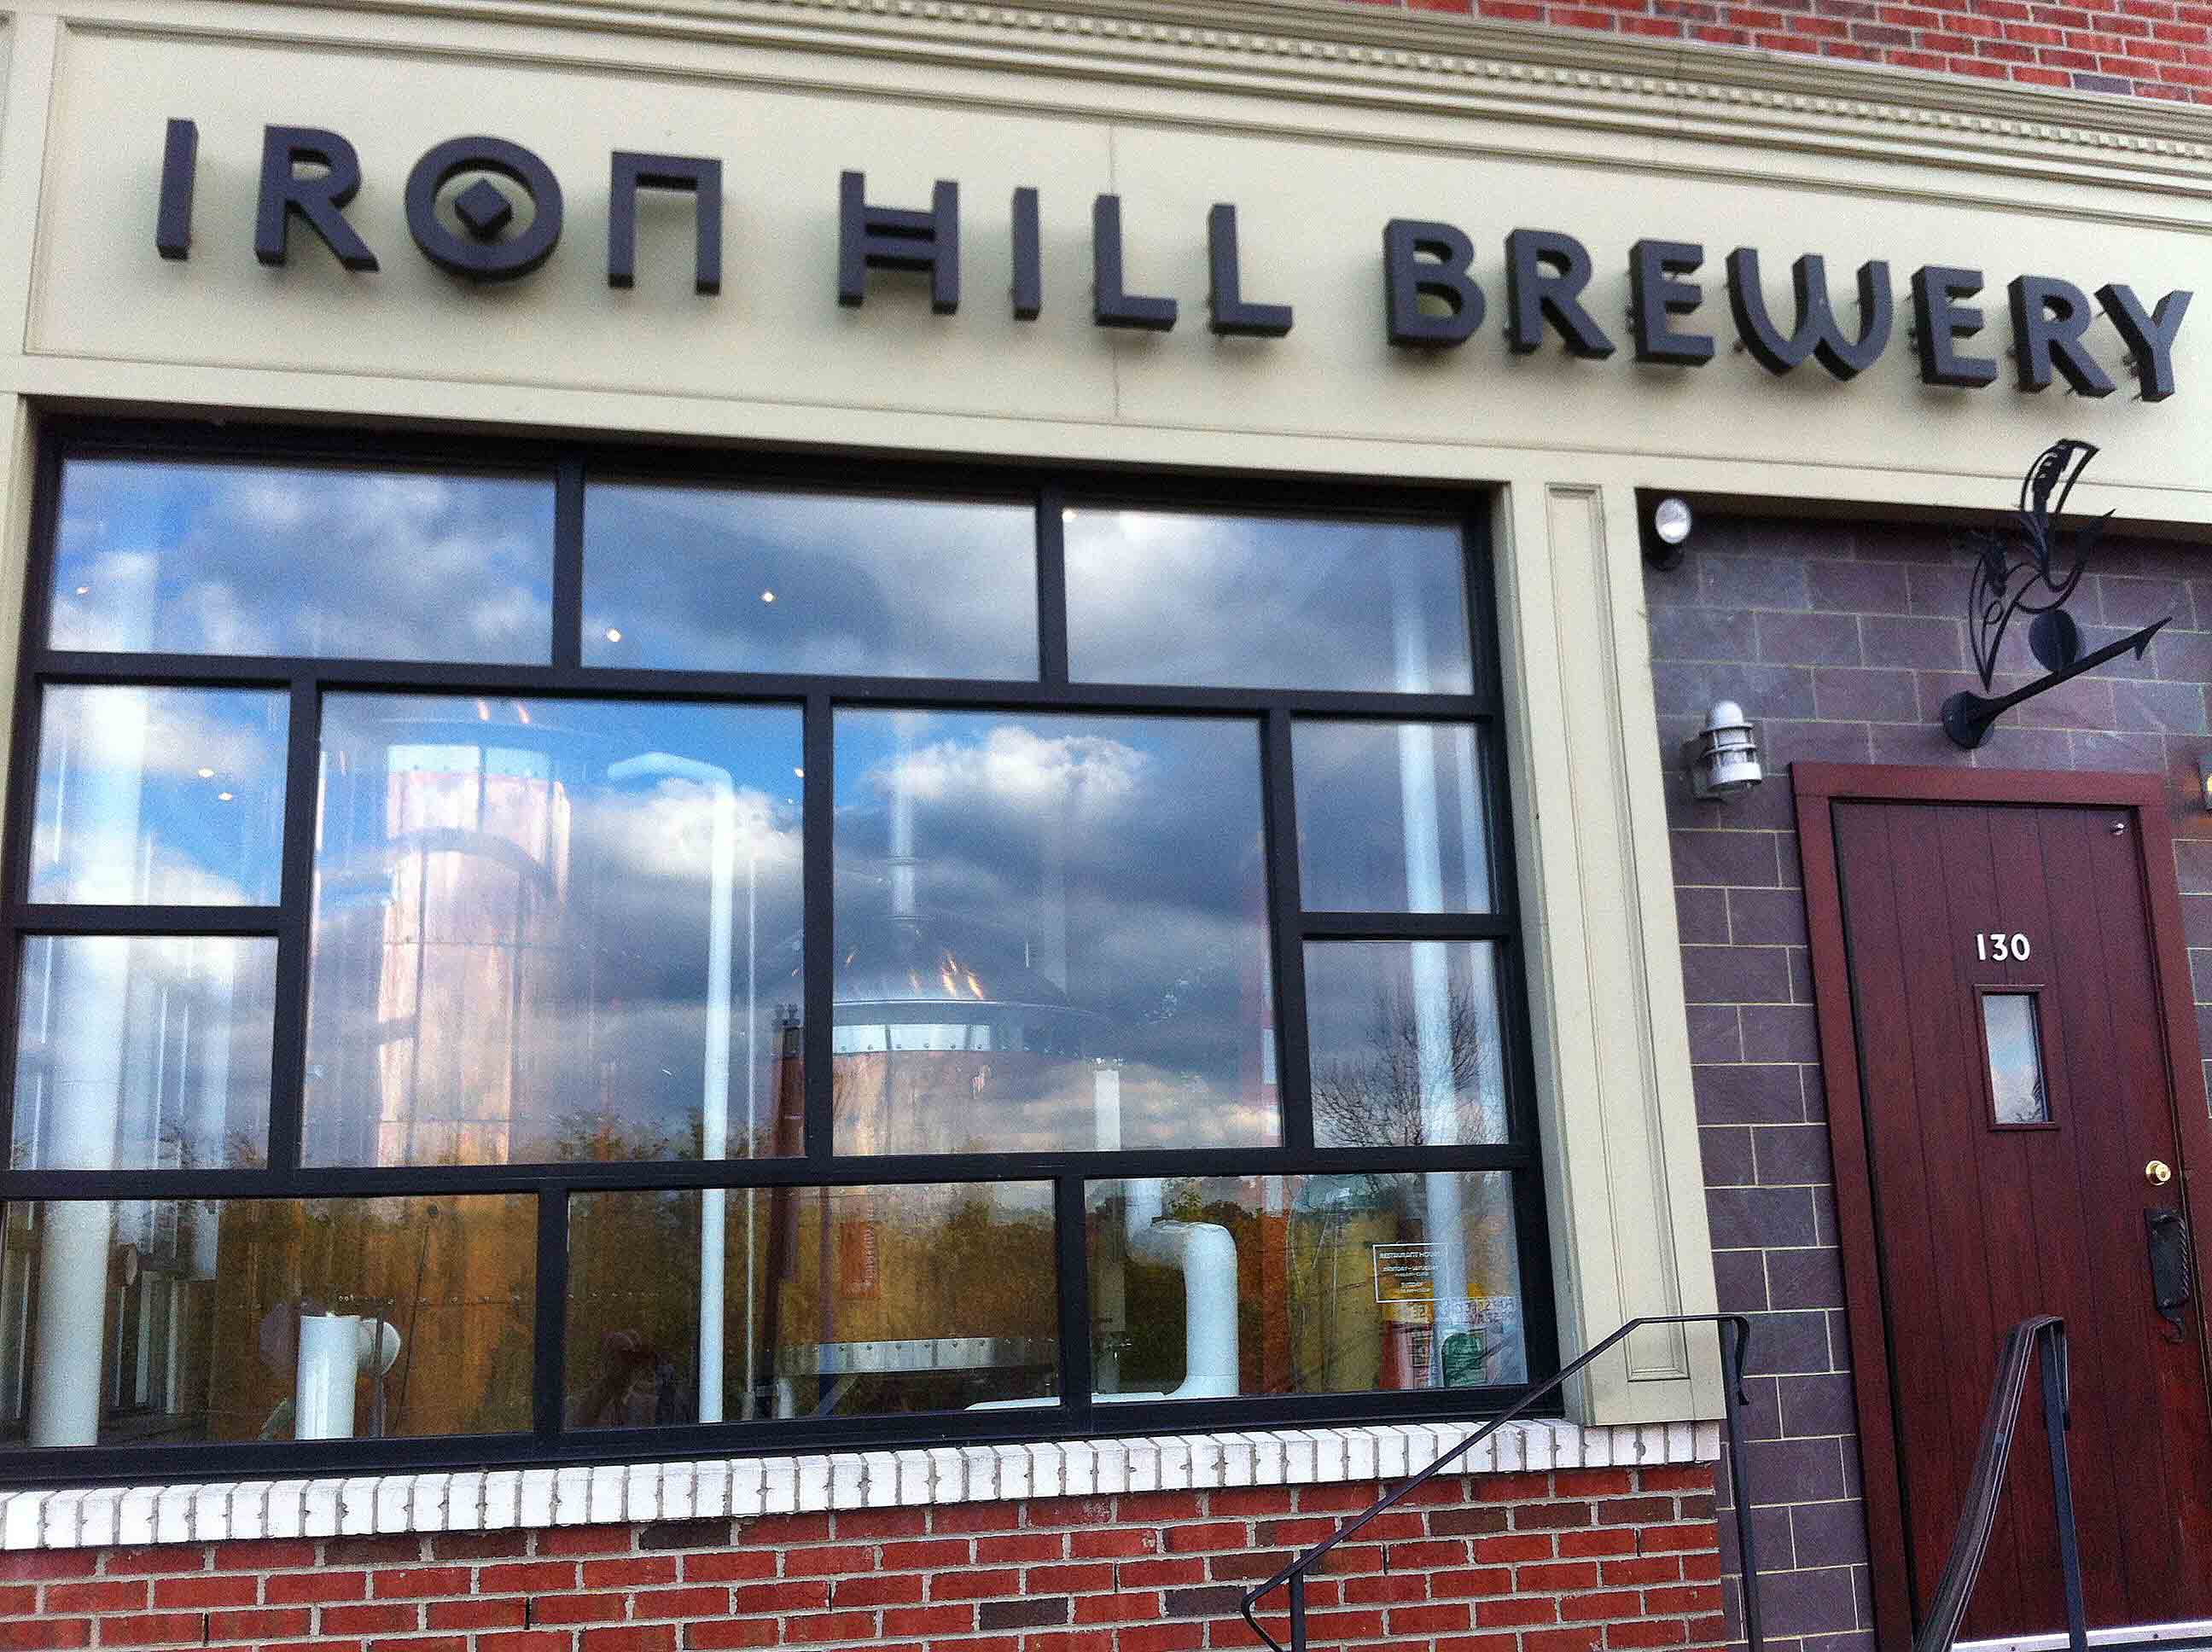 141. Iron Hill, Phoenixville 2012